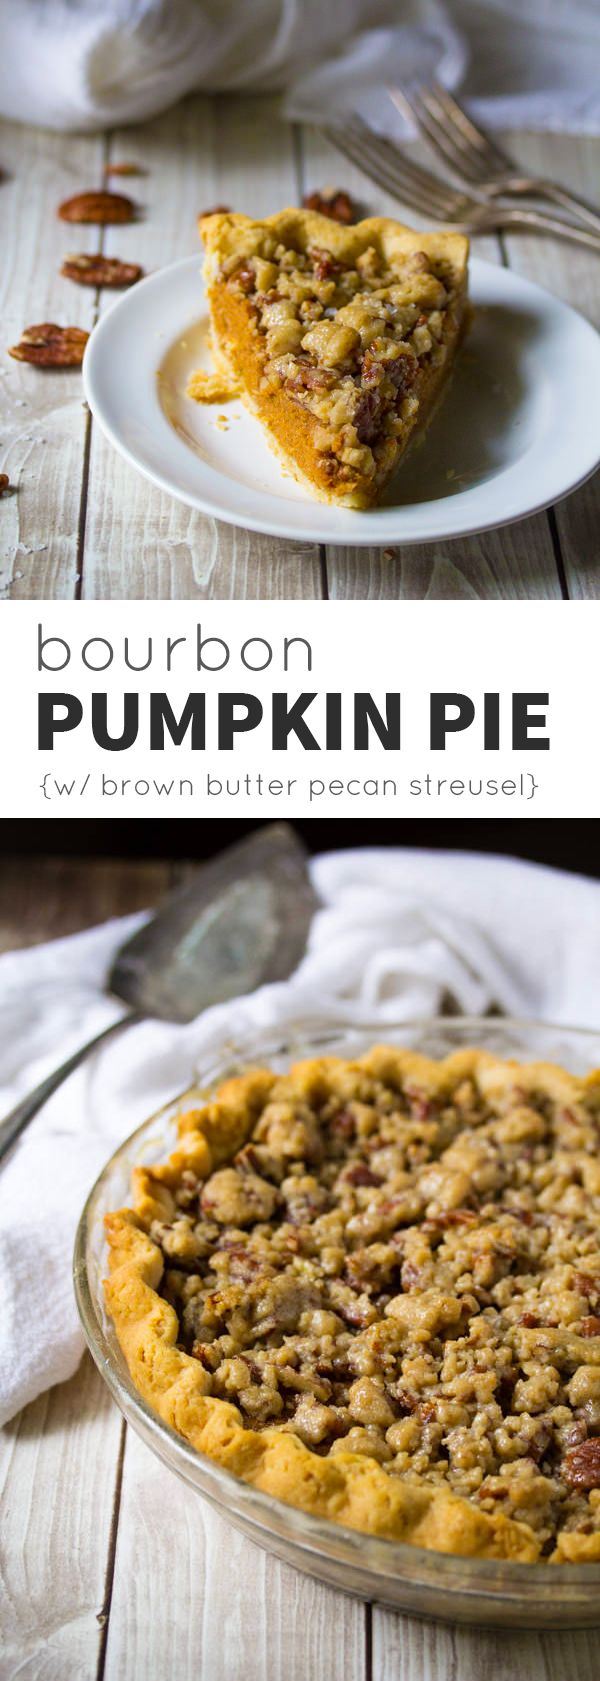 Bourbon Pumpkin Pie with Salted Brown Butter Pecan Streusel @sweetpeasaffron